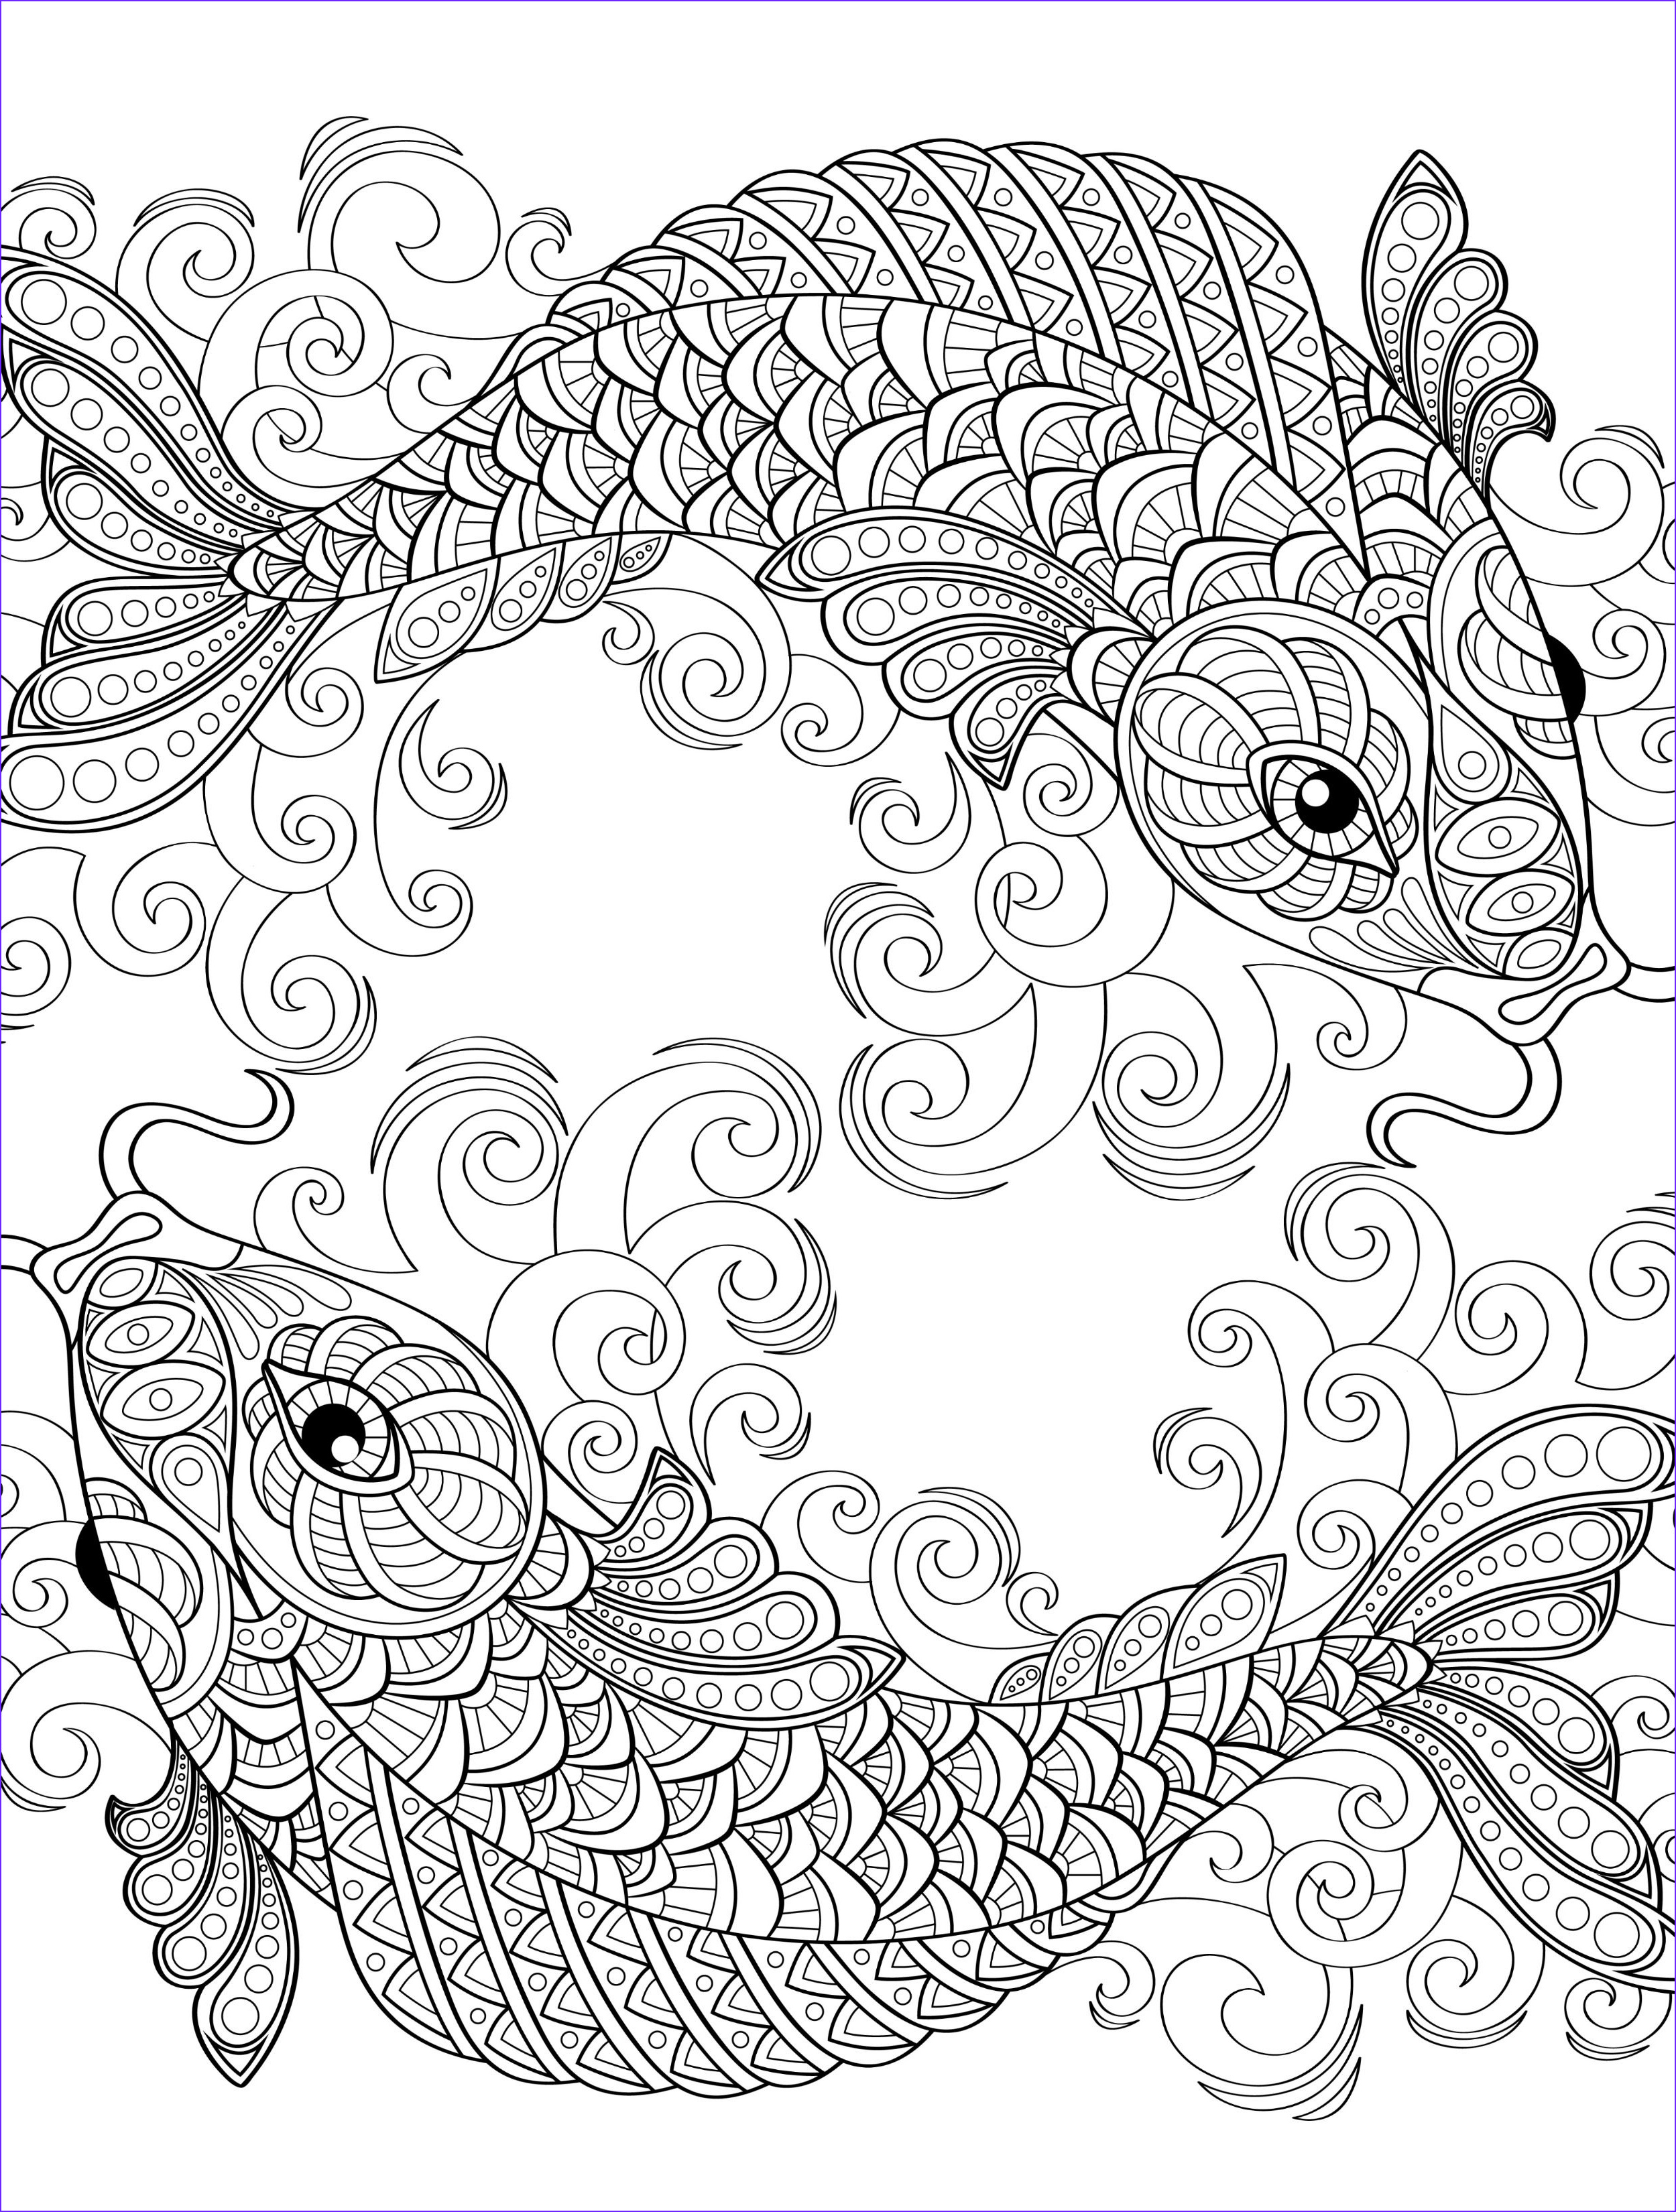 Coloring Books Adult Luxury Photography 18 Absurdly Whimsical Adult Coloring Pages